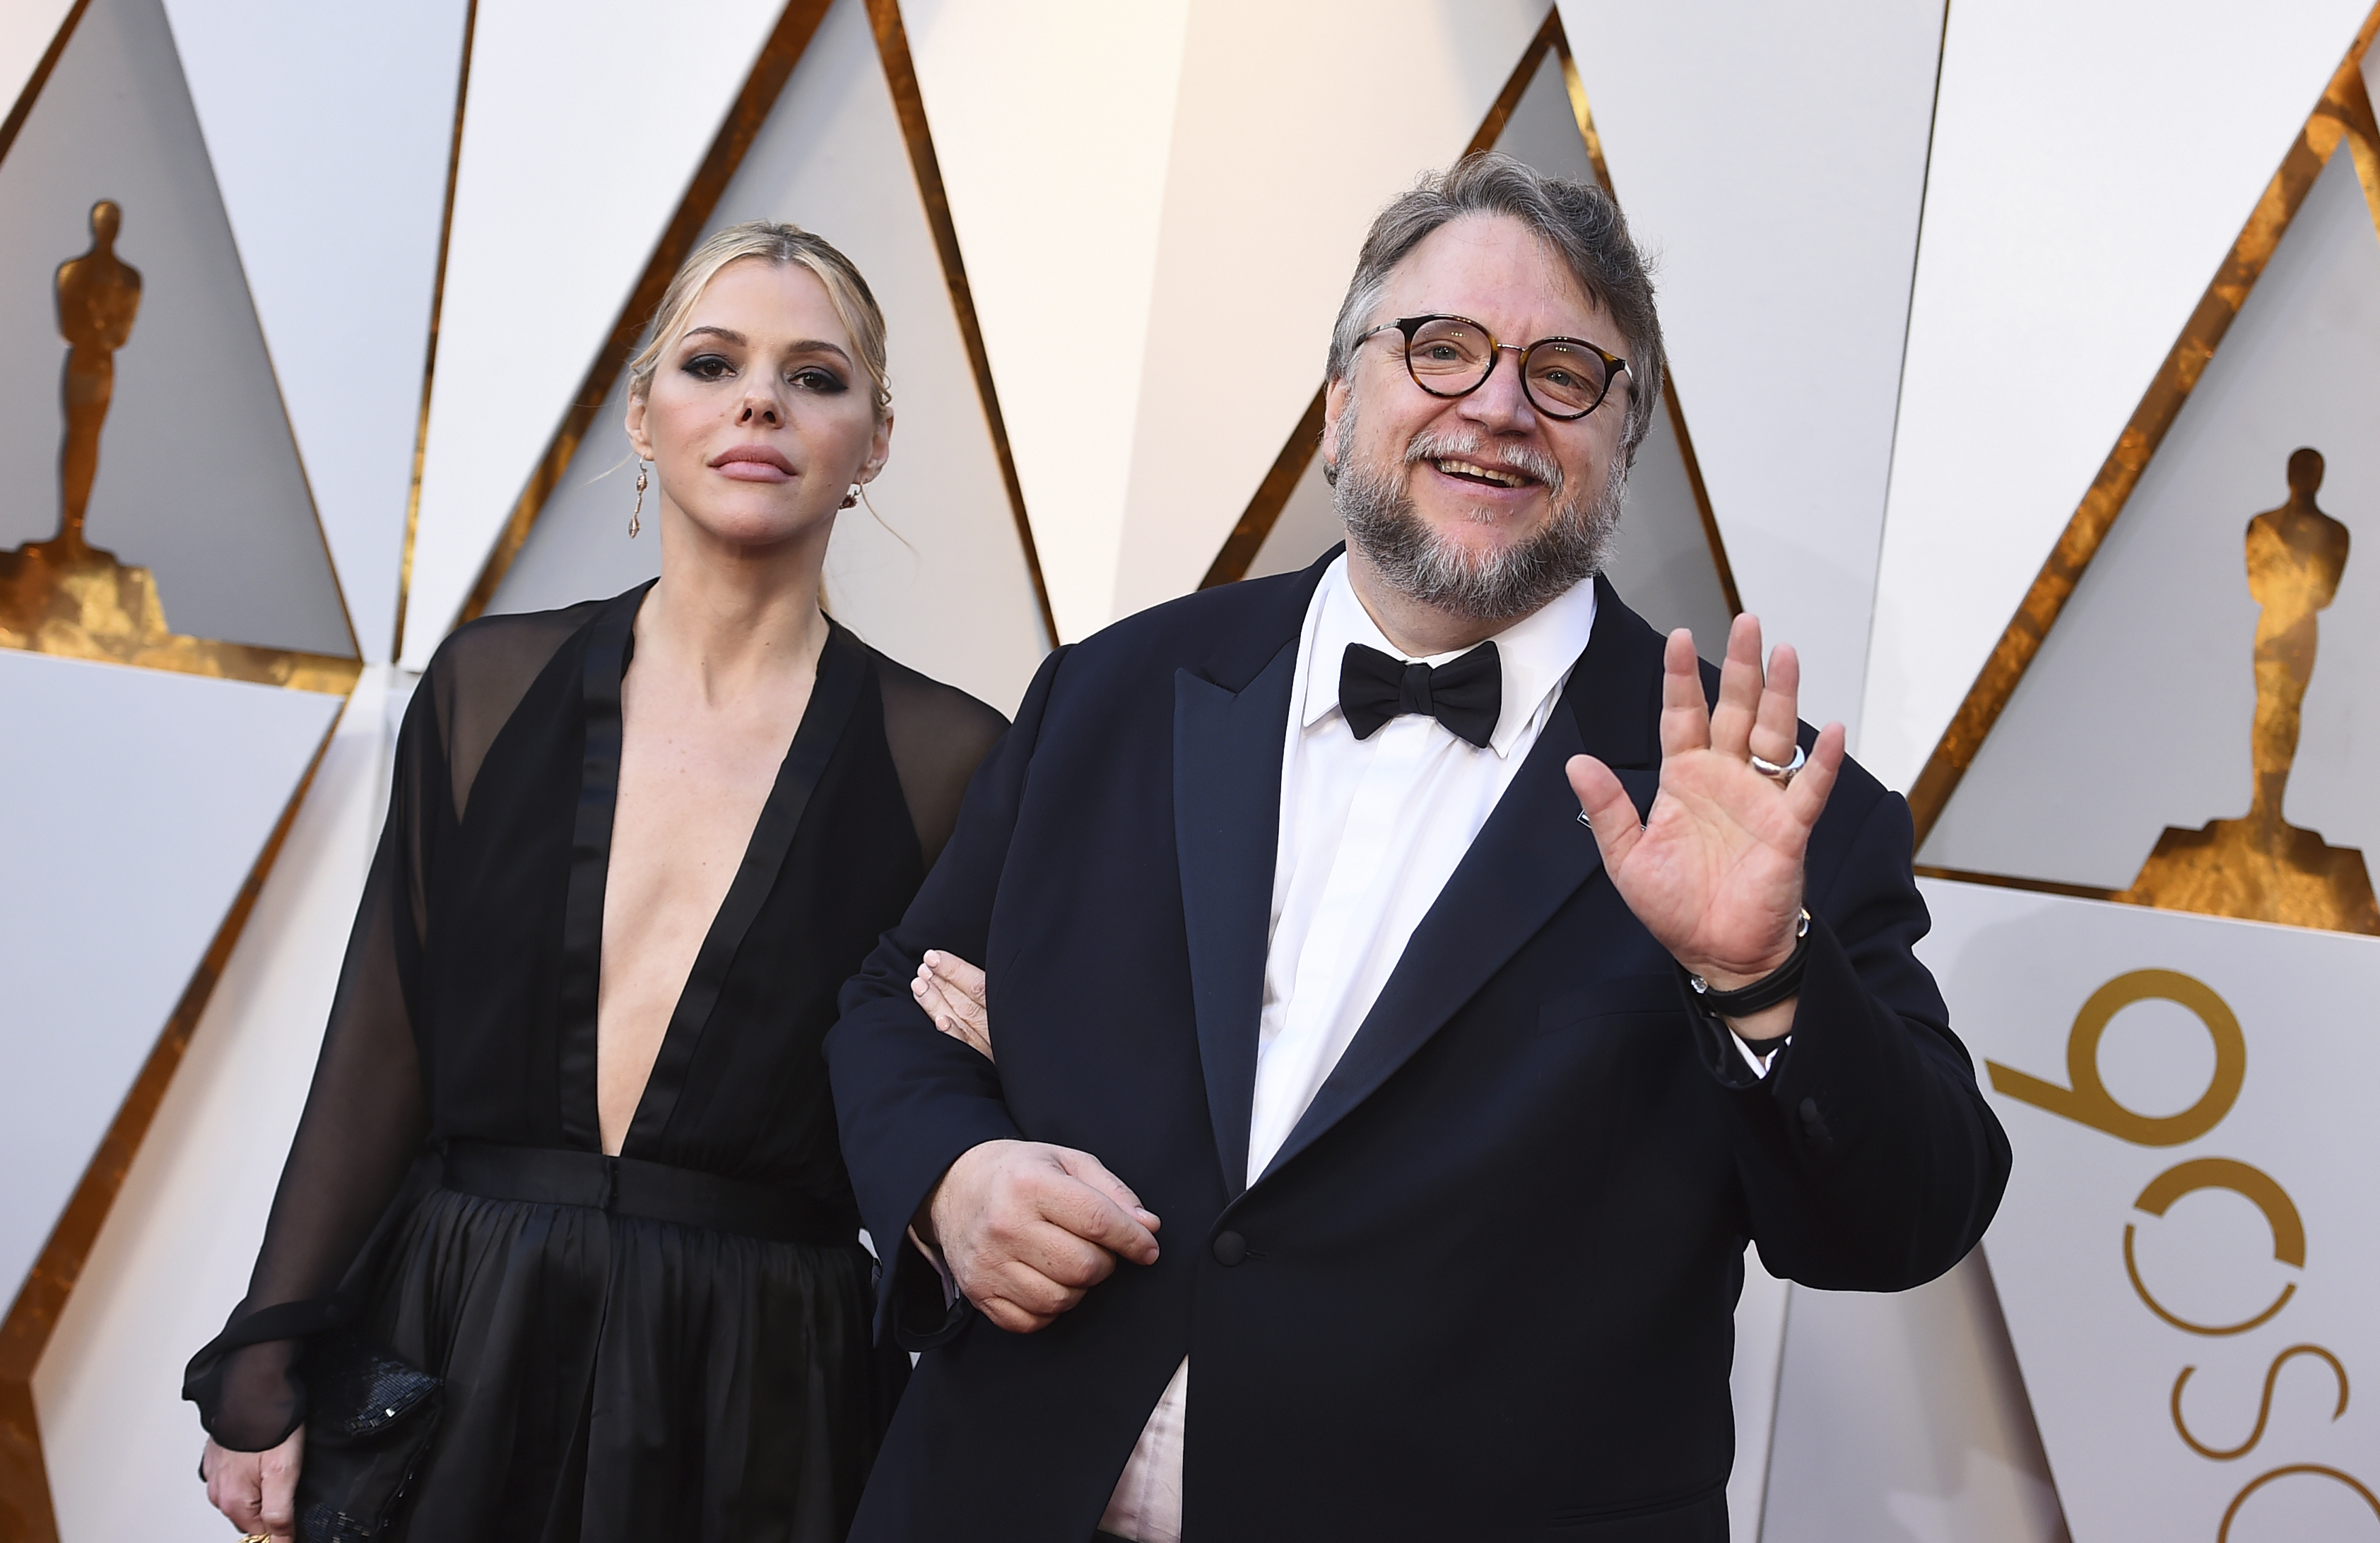 <div class='meta'><div class='origin-logo' data-origin='none'></div><span class='caption-text' data-credit='Jordan Strauss/Invision/AP'>Kim Morgan, left, and Guillermo del Toro (nominated for Best Director for ''The Shape of Water'') arrive at the Oscars.</span></div>